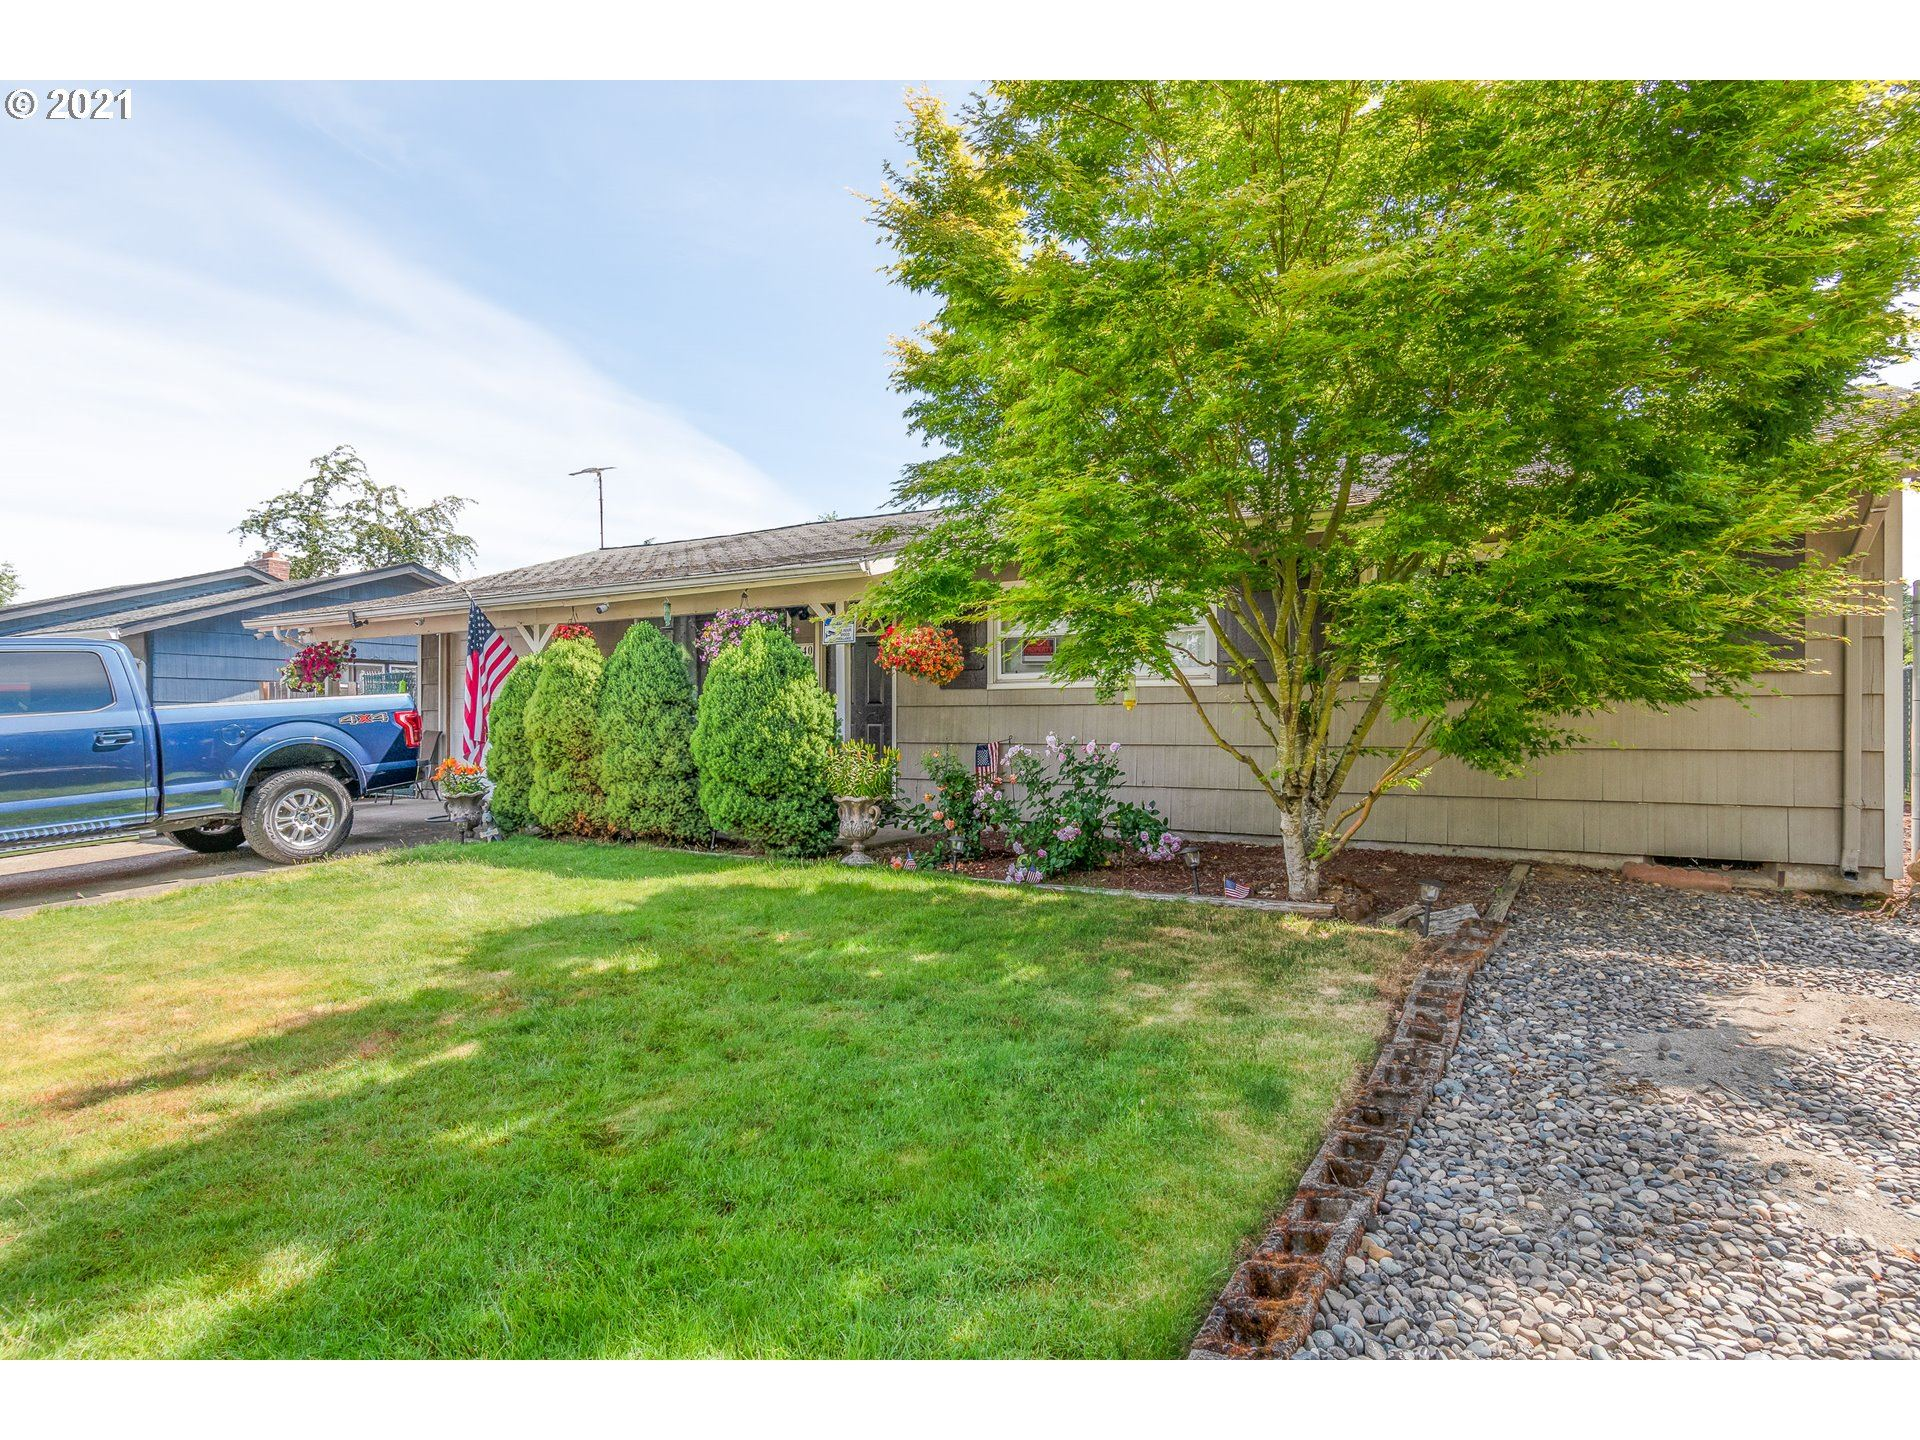 740 SE 180TH AVE, Portland, OR 97233 - MLS#: 21067424